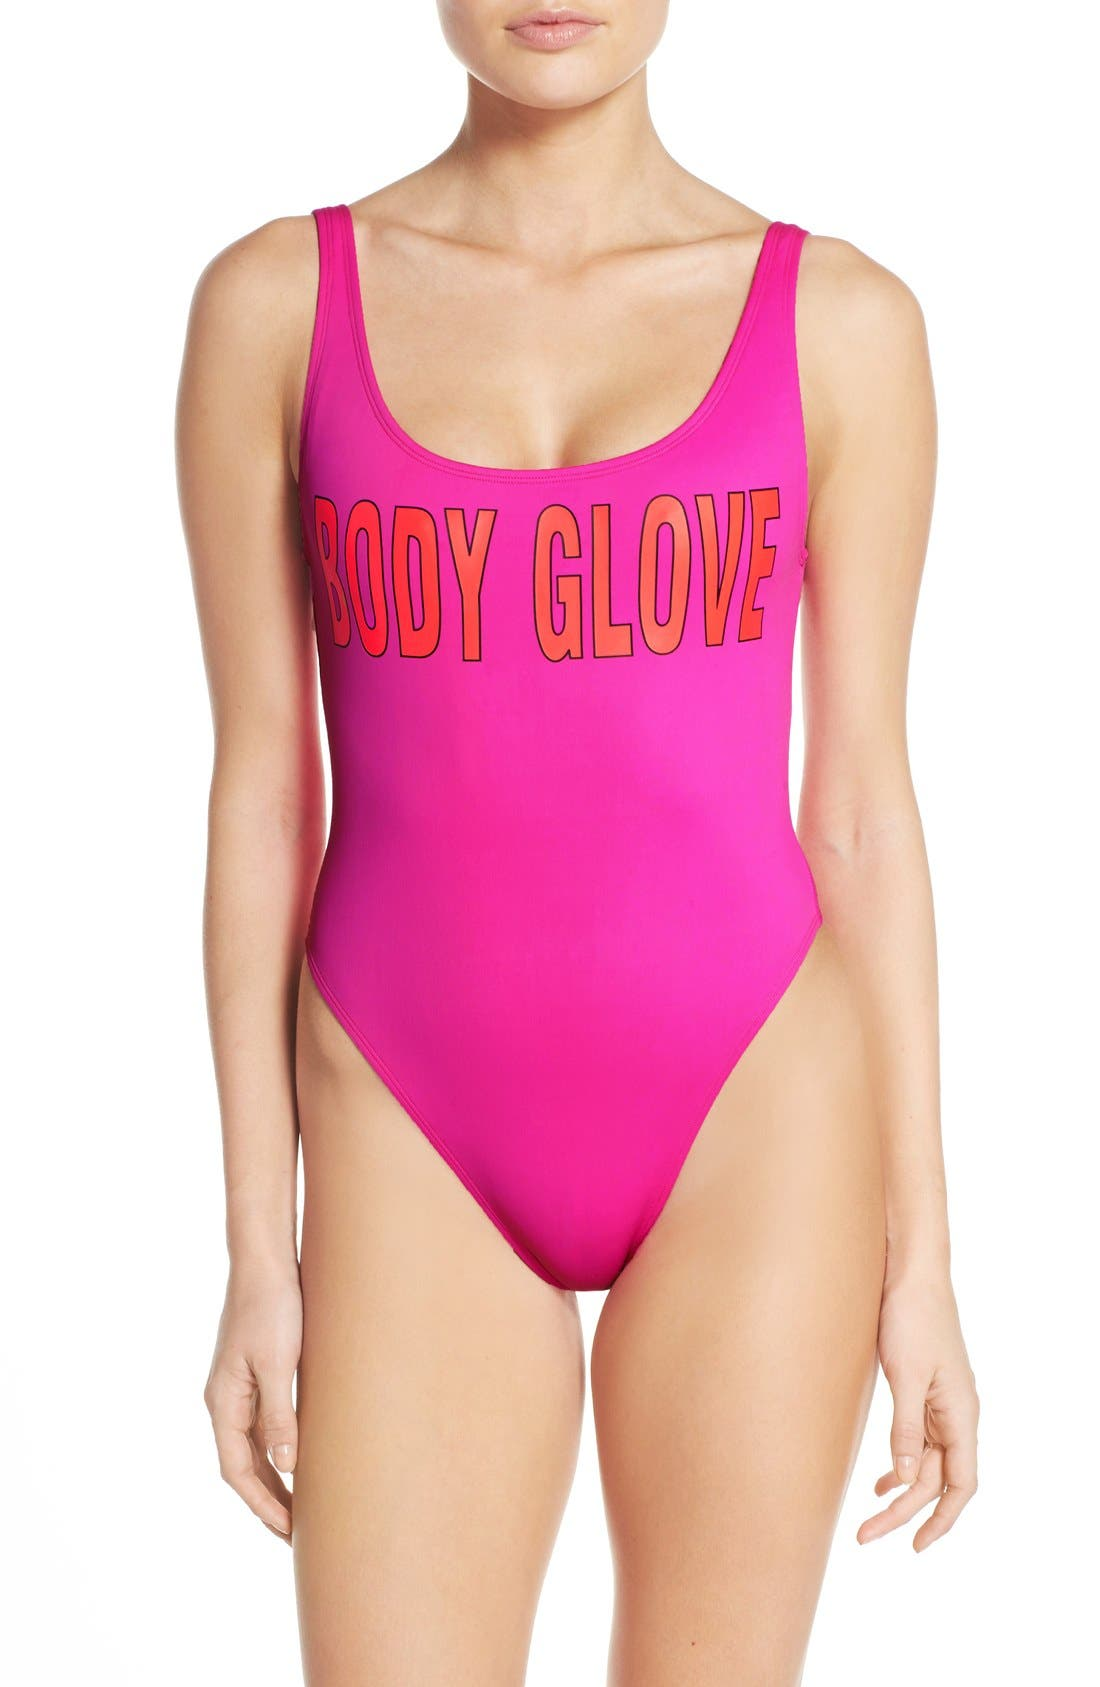 Body Glove '1989 The Look' One-Piece Swimsuit